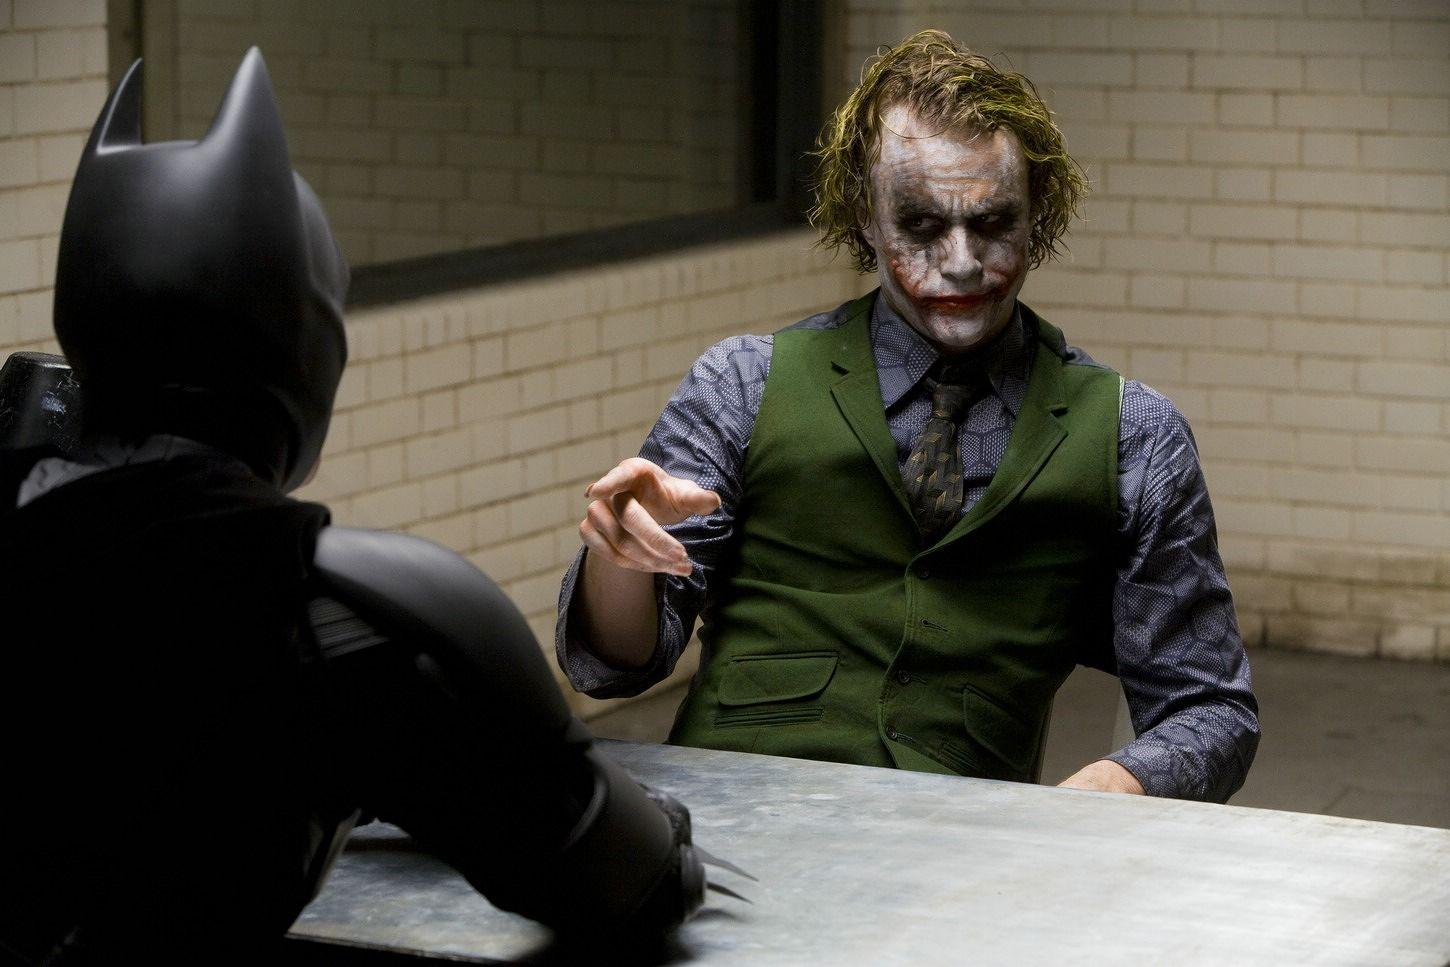 the joker vs the dark knight